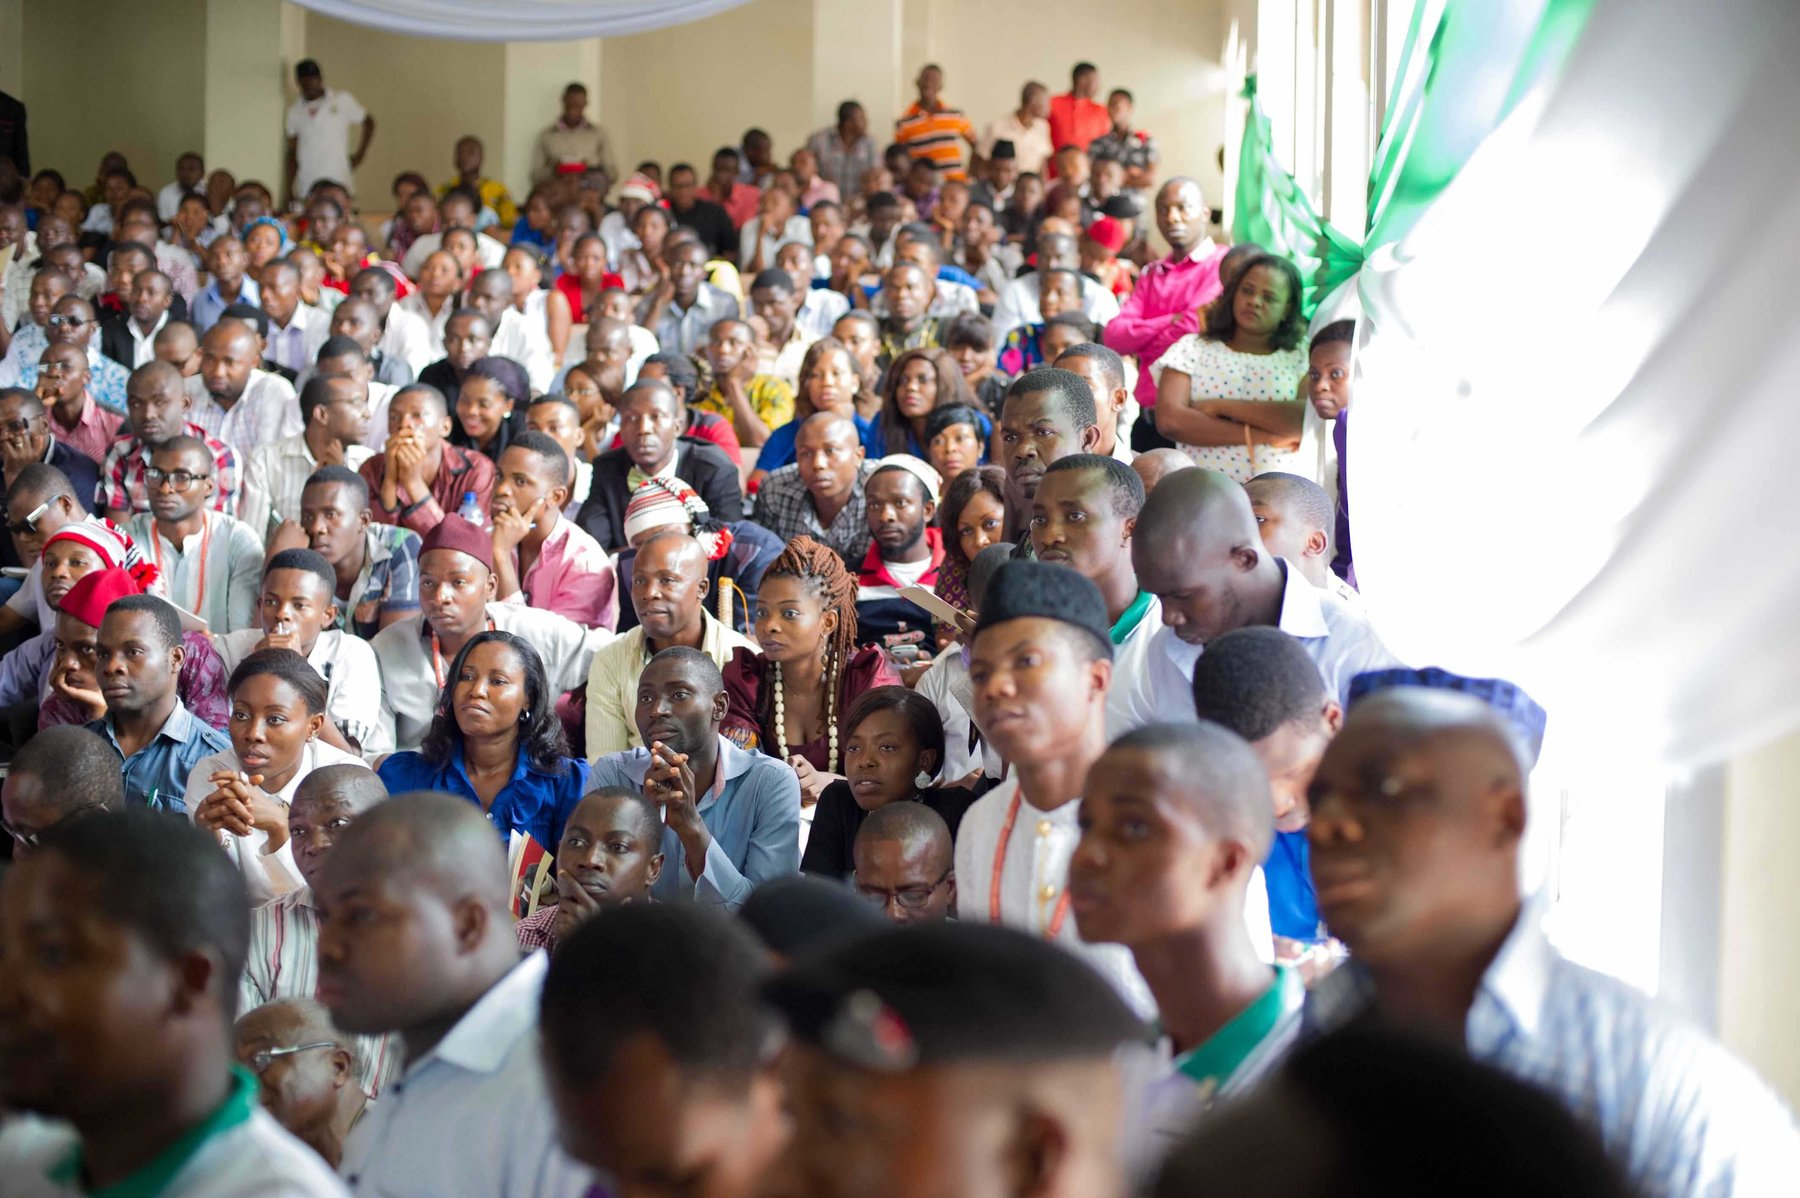 Students at the Nsukka University gather to hear Kalu speak.